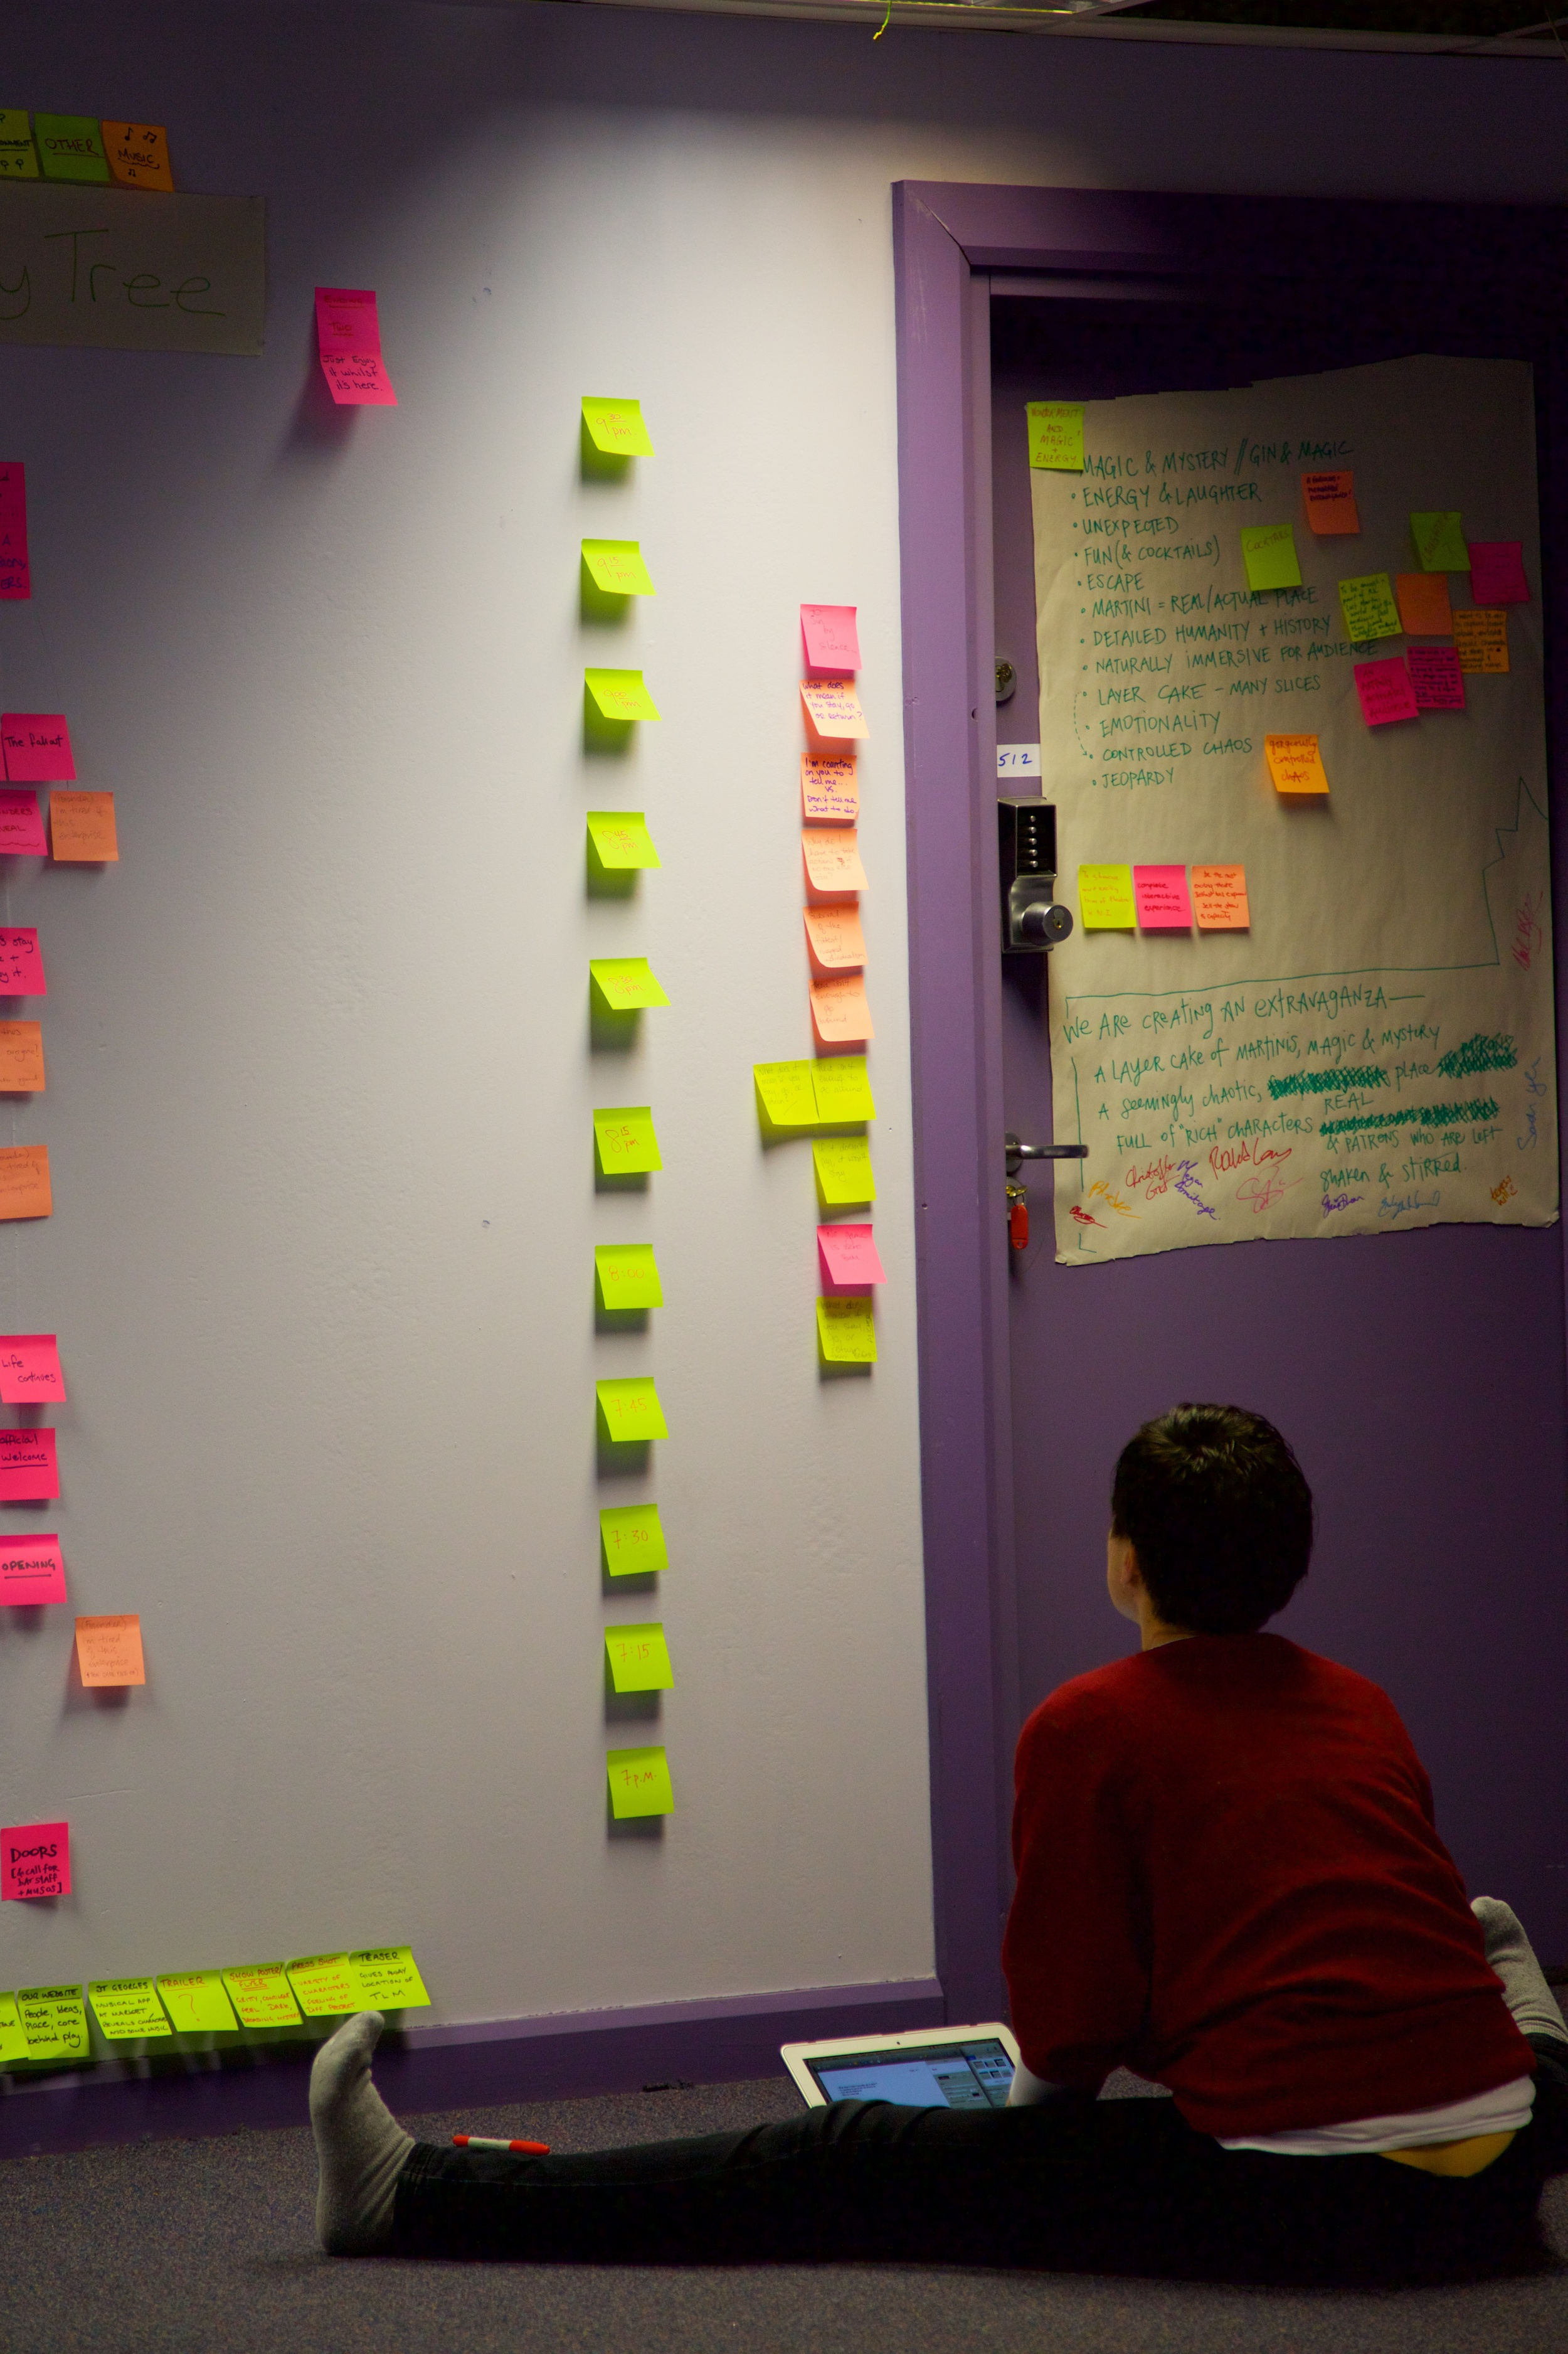 Shannon Yeeinfrontof the Post-It Walls